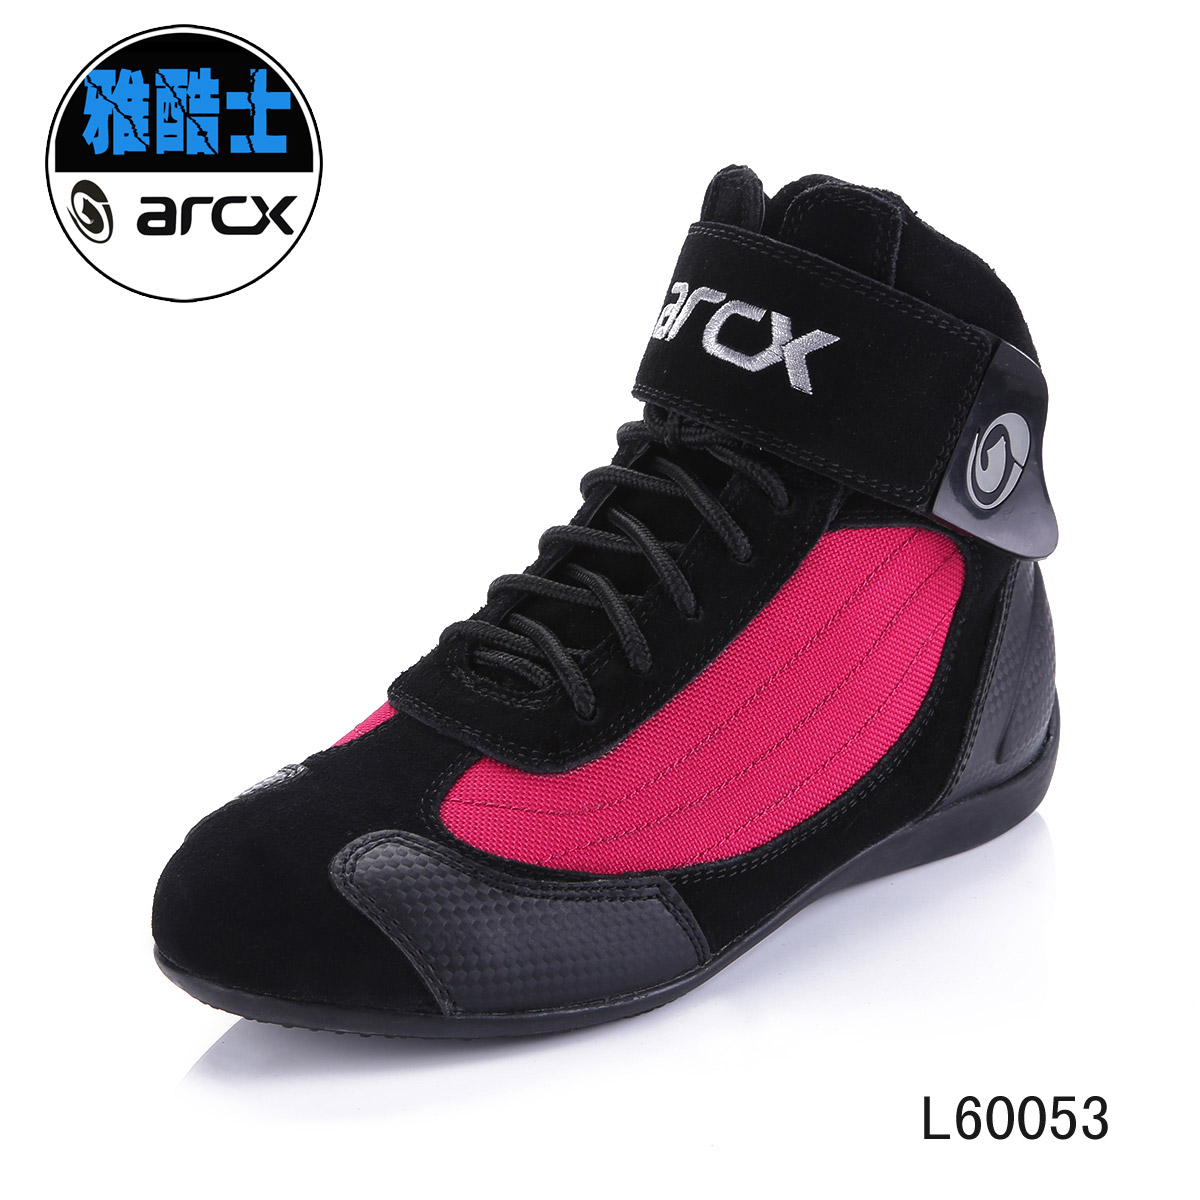 Здесь можно купить  For ar  arrival cx automobile race shoes ride shoes motorcycle shoes boots summer shoes  Автомобили и Мотоциклы